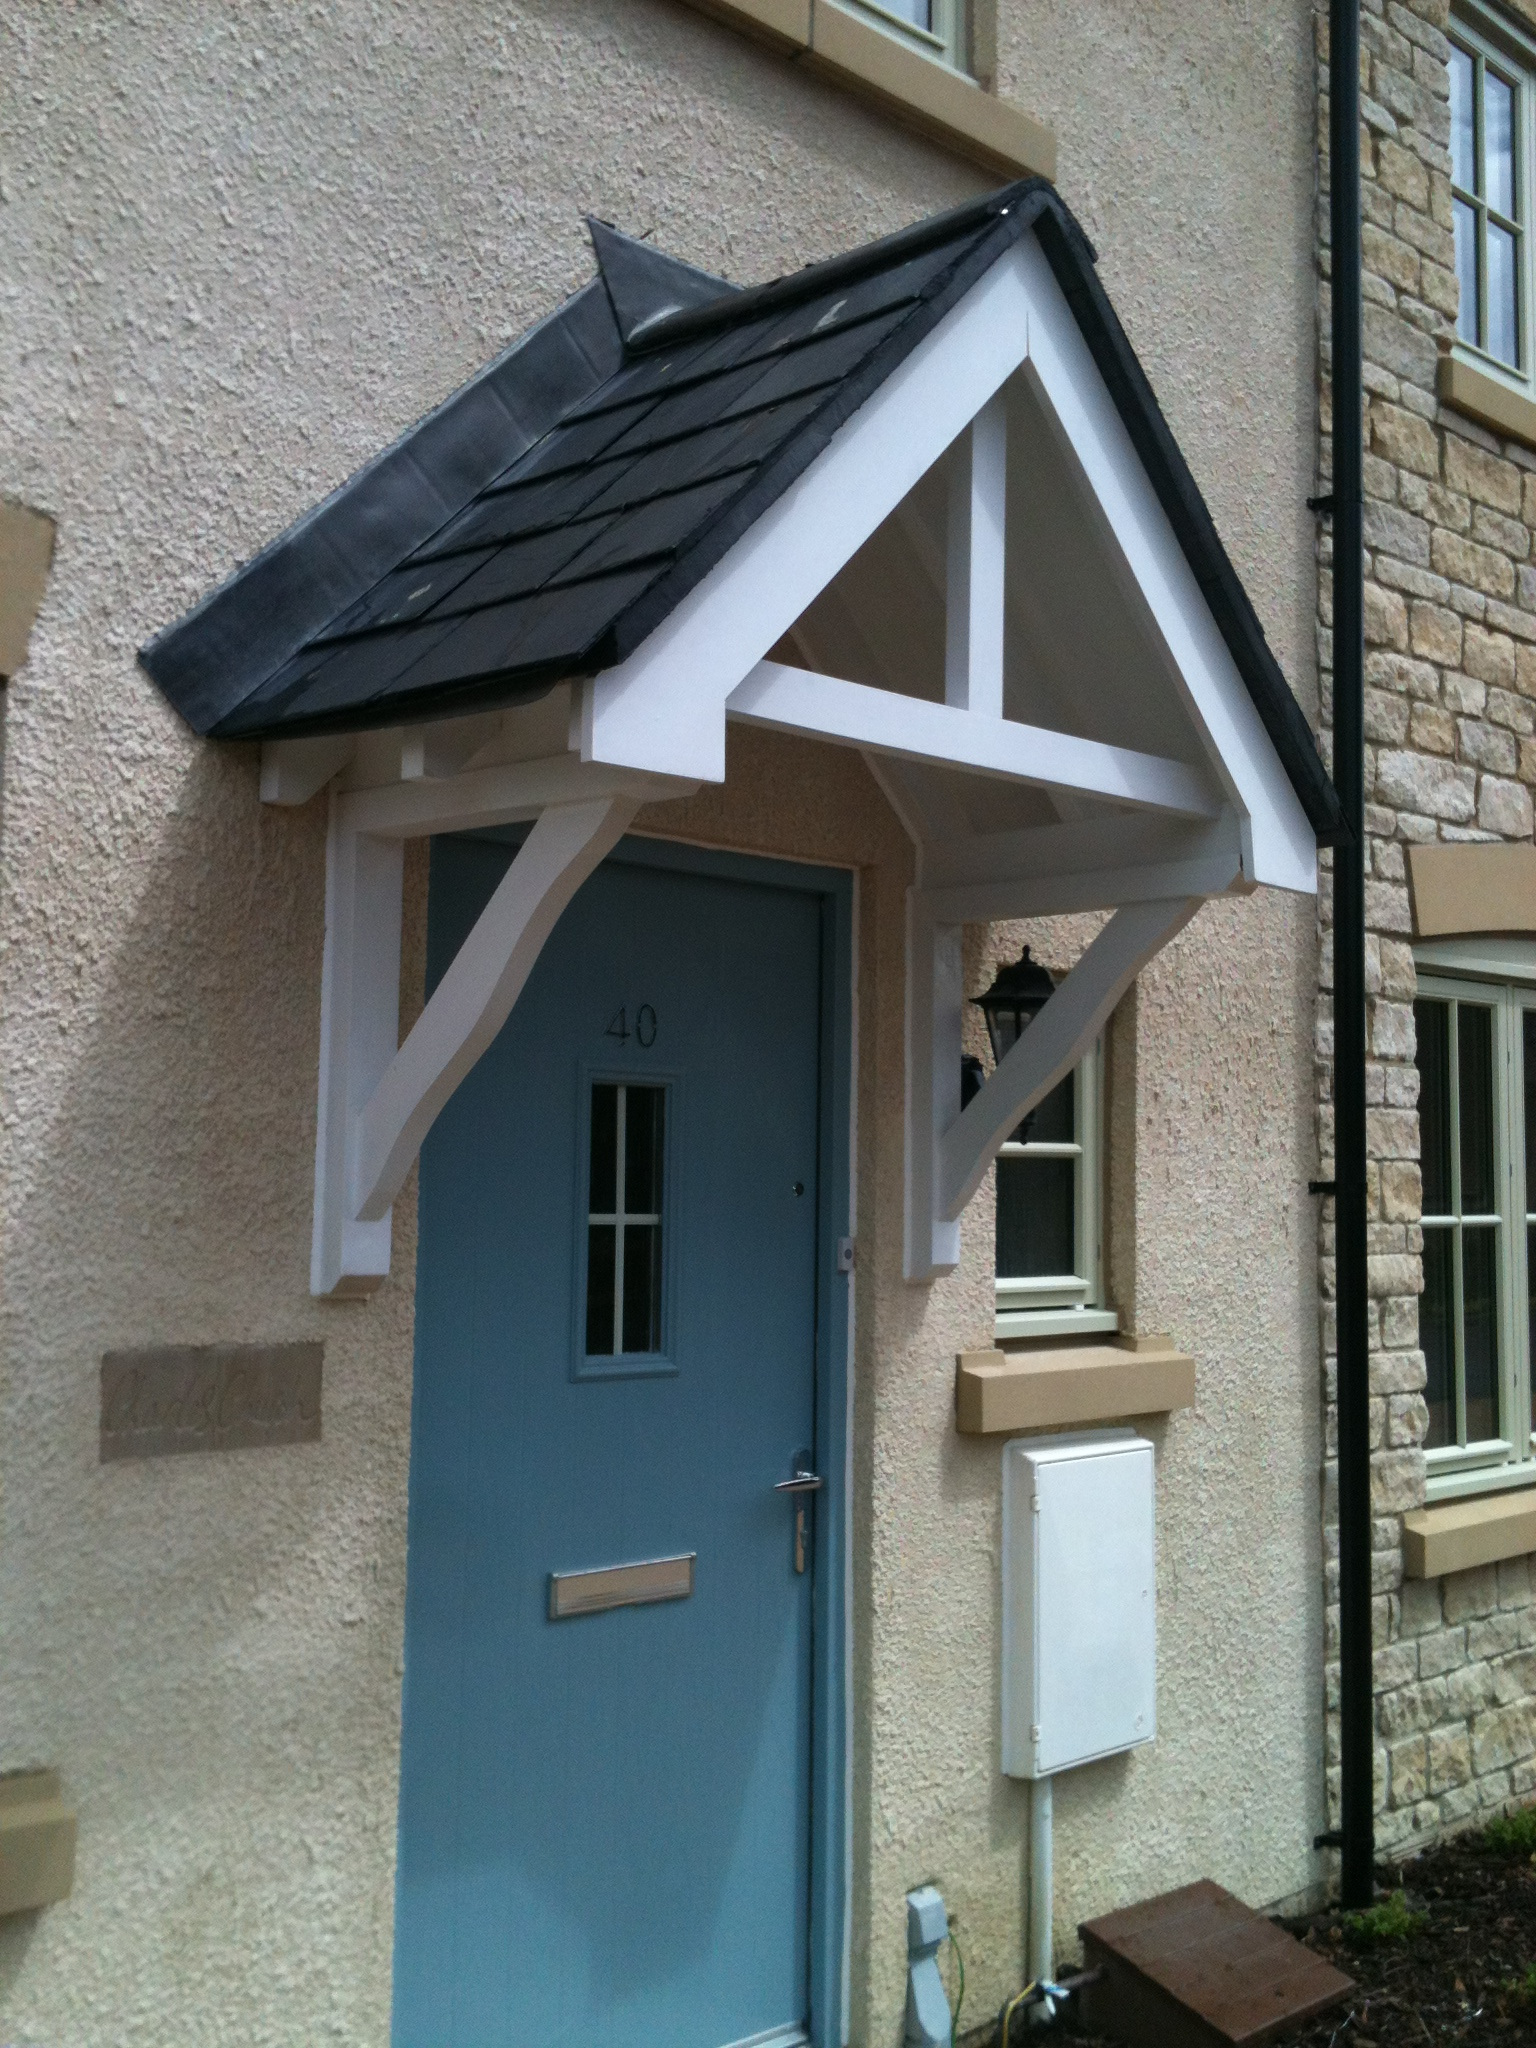 & Door surrounds  Door canopies Cheltenham